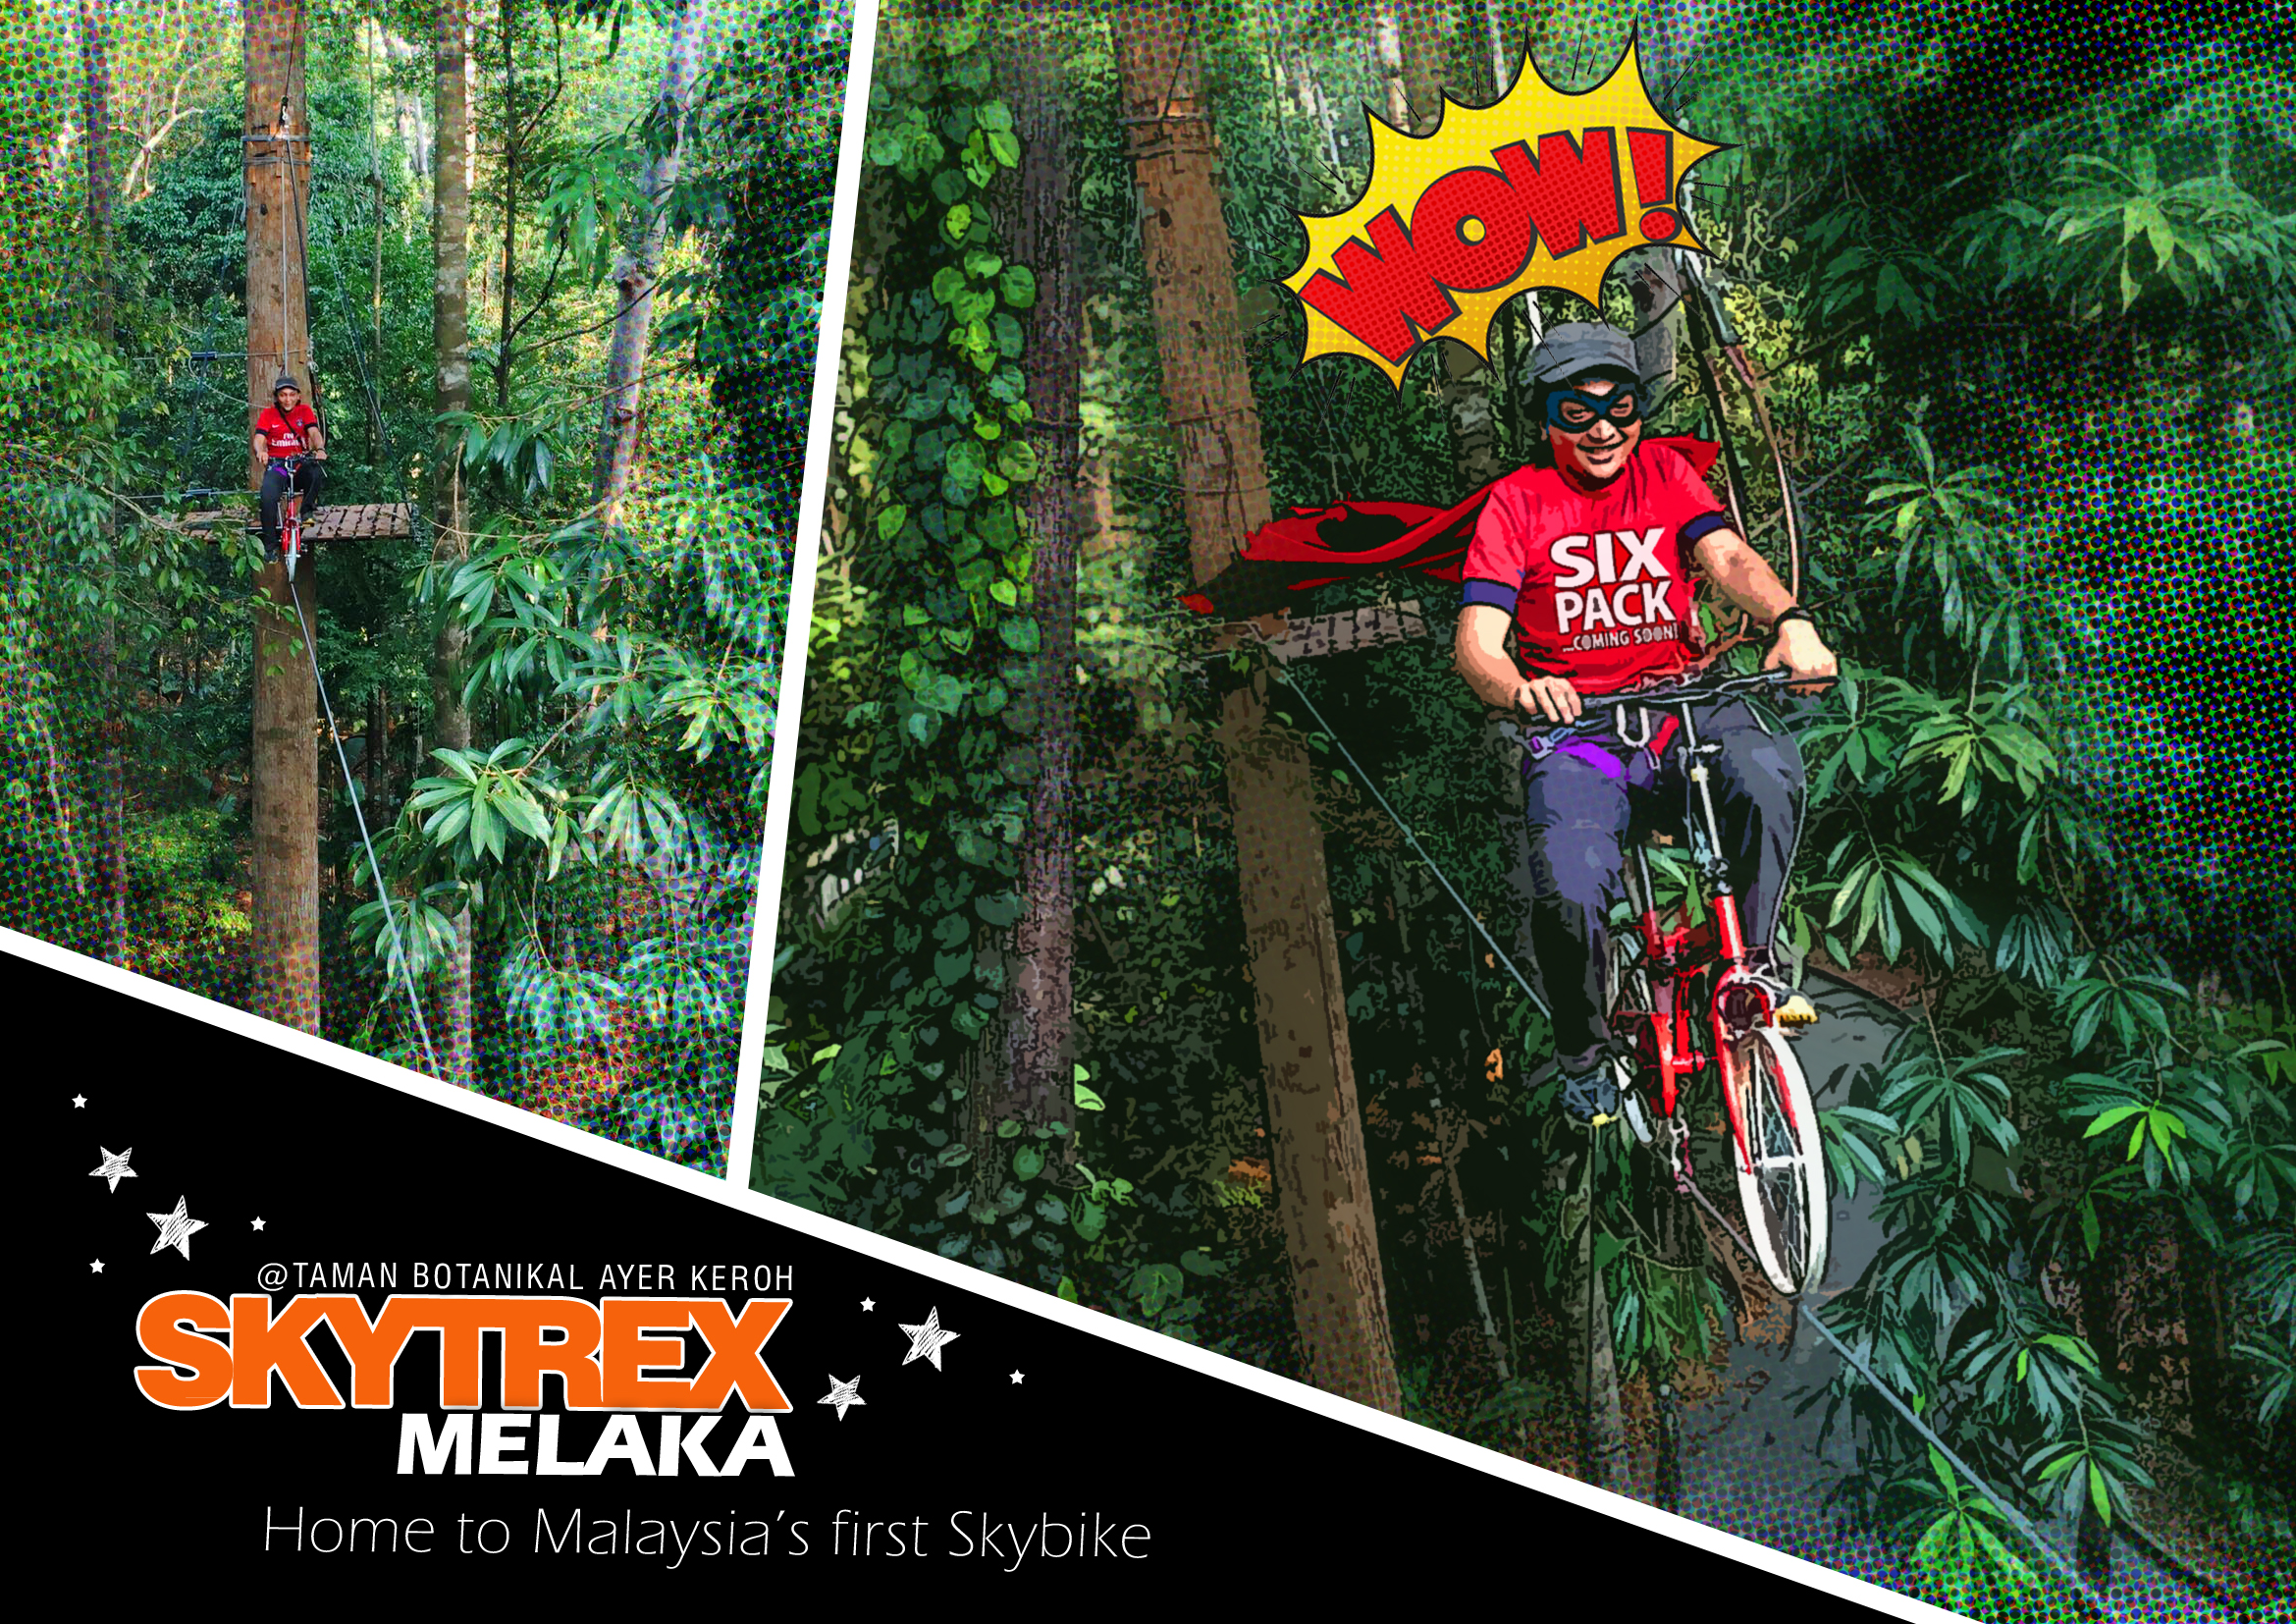 First Skybike in Malaysia!